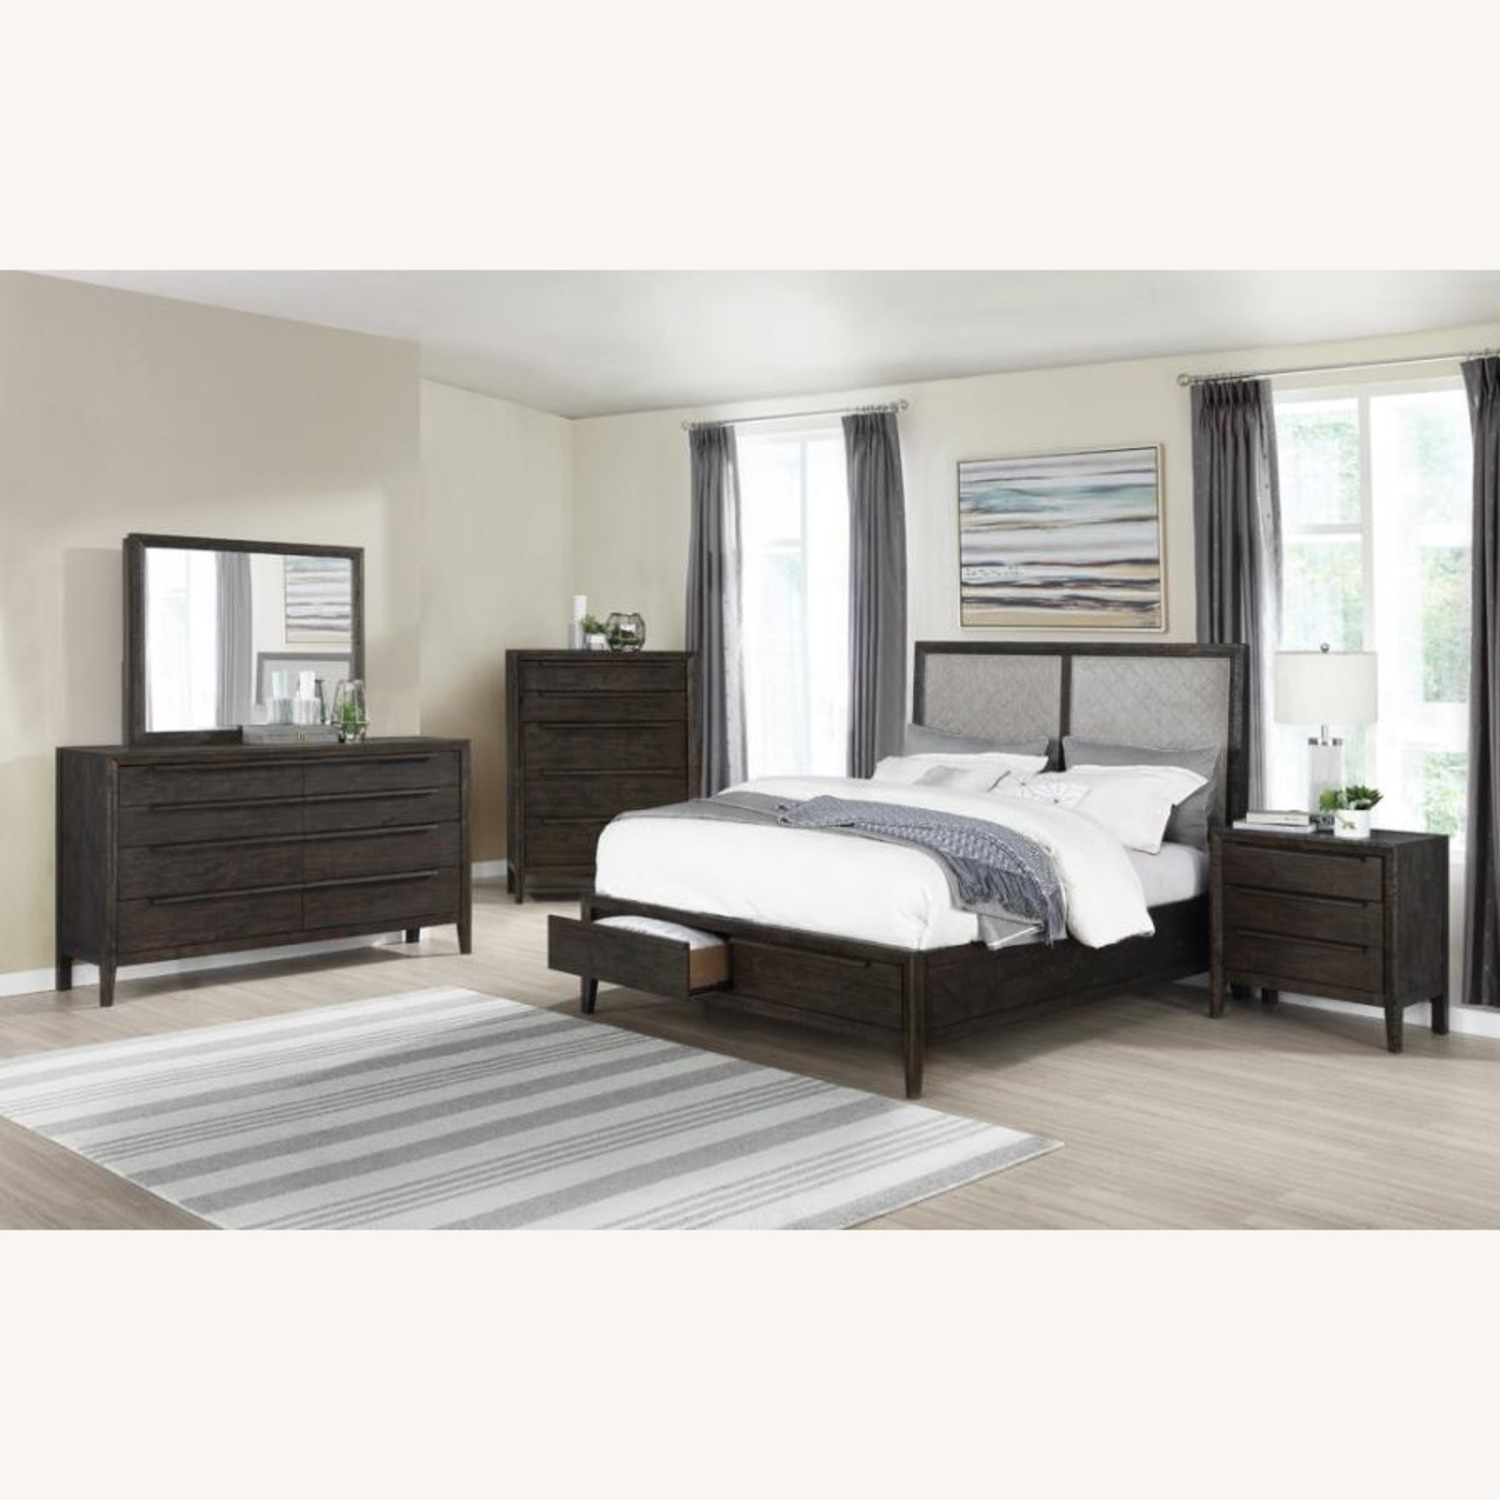 Modern Classic Style Dresser In French Press Wood - image-3